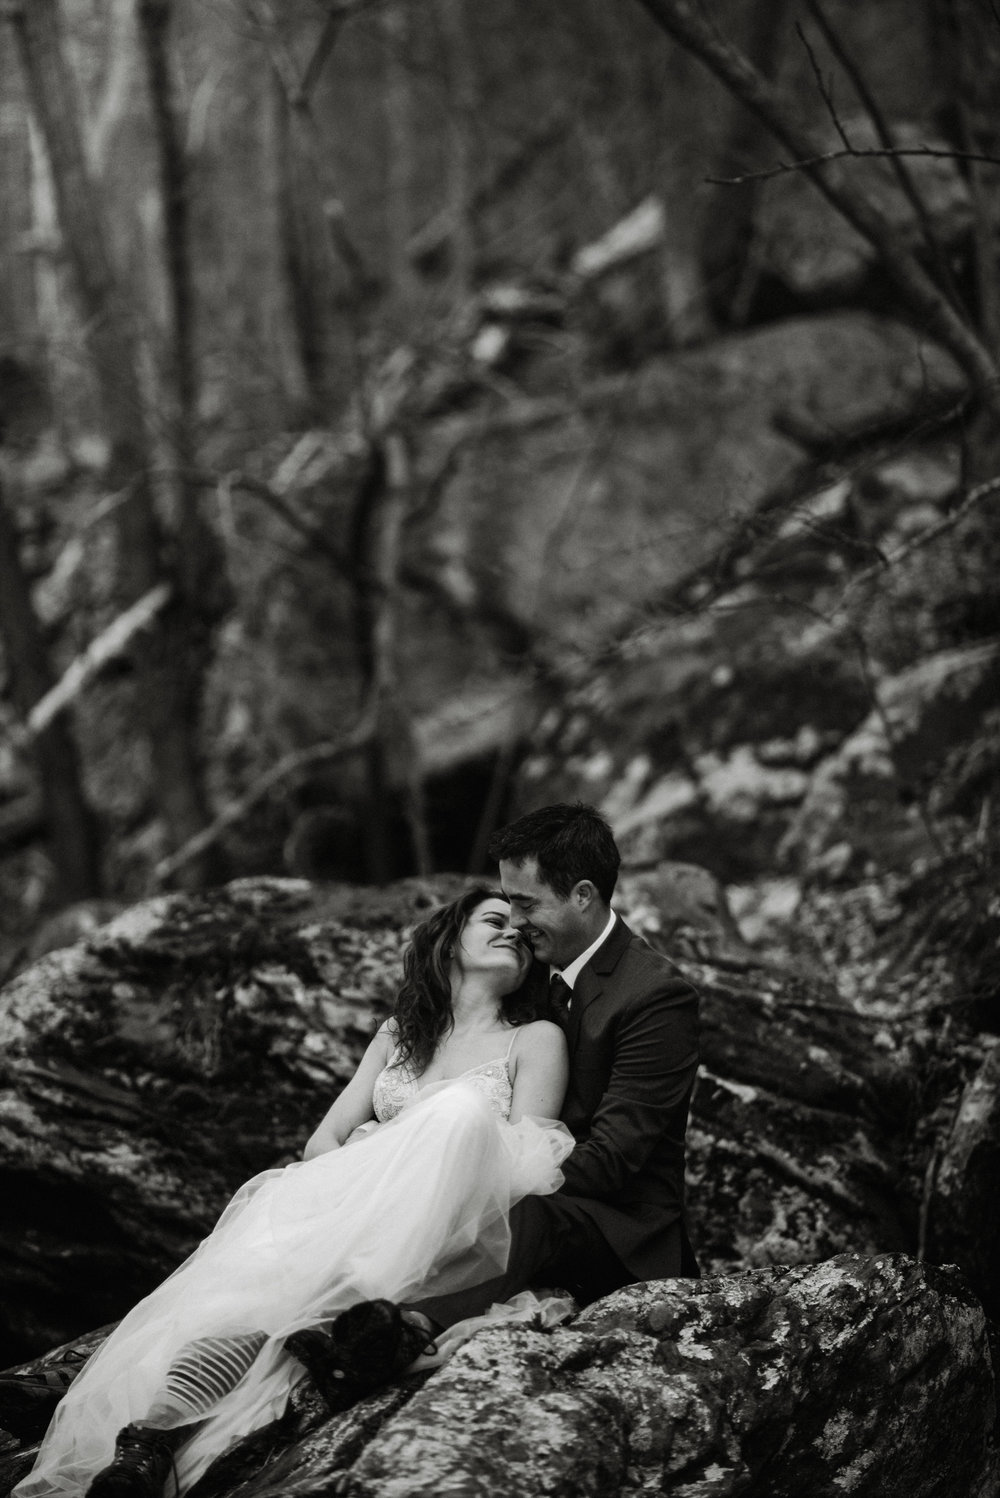 Stephanie and Steve - Shenandoah National Park Elopement - Sunrise Hiking Elopement - Adventurous Elopement - Virginia Elopement Photographer - Shenandoah national Park Wedding Photographer - White Sails Creative_35.jpg